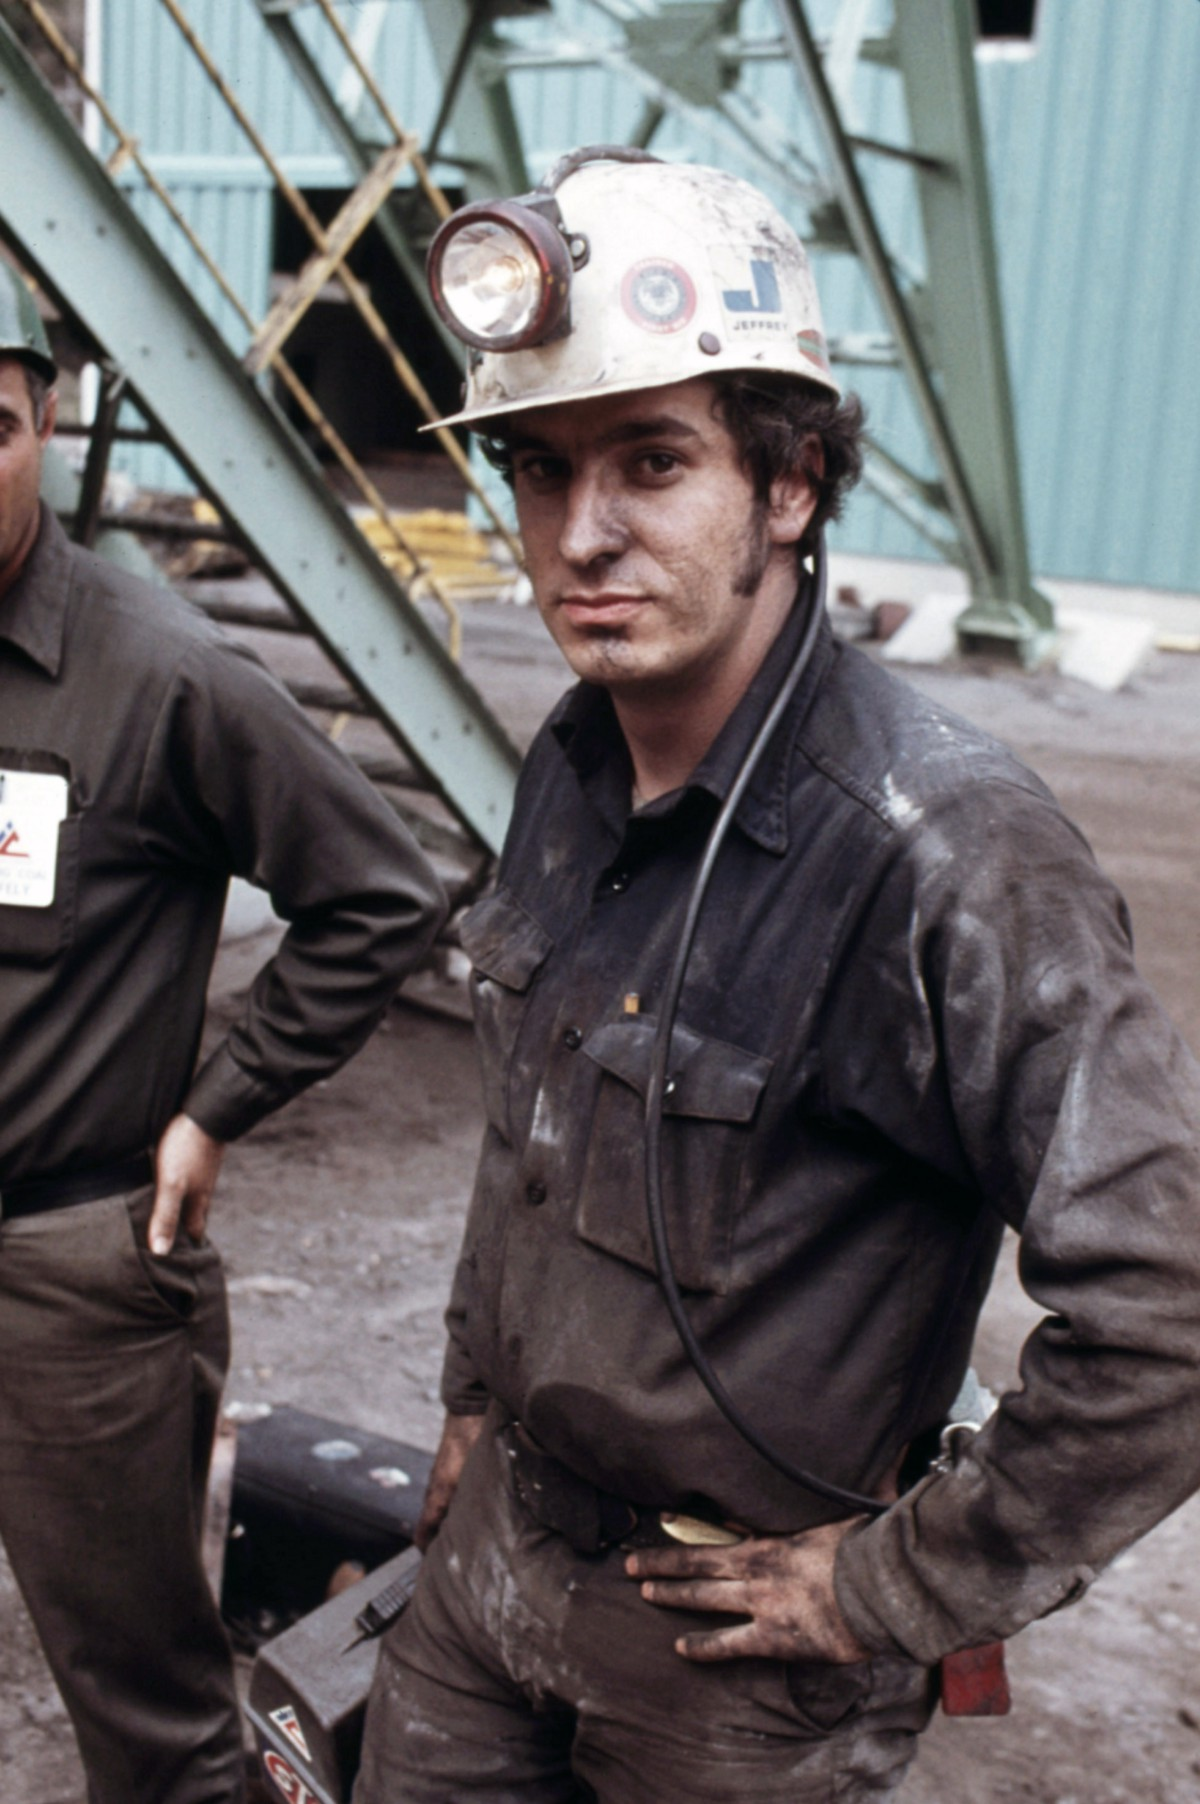 The Deep Imagery Of Coal Mining In The 1970s Shows A